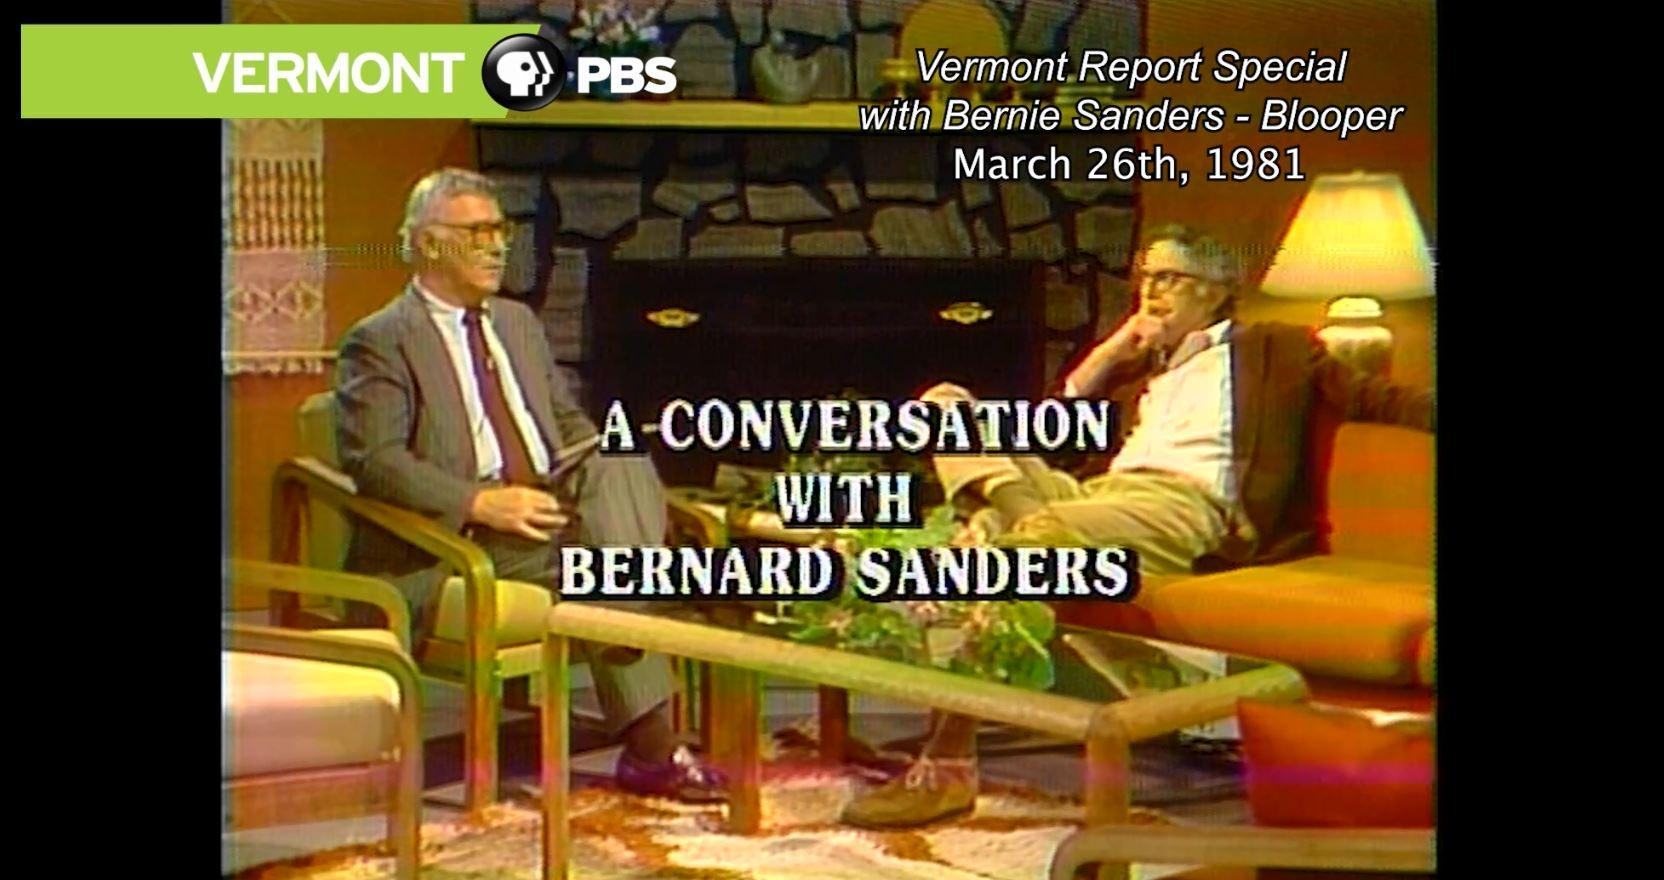 Beyond Bernie - Searching for Vermont's Political Identity